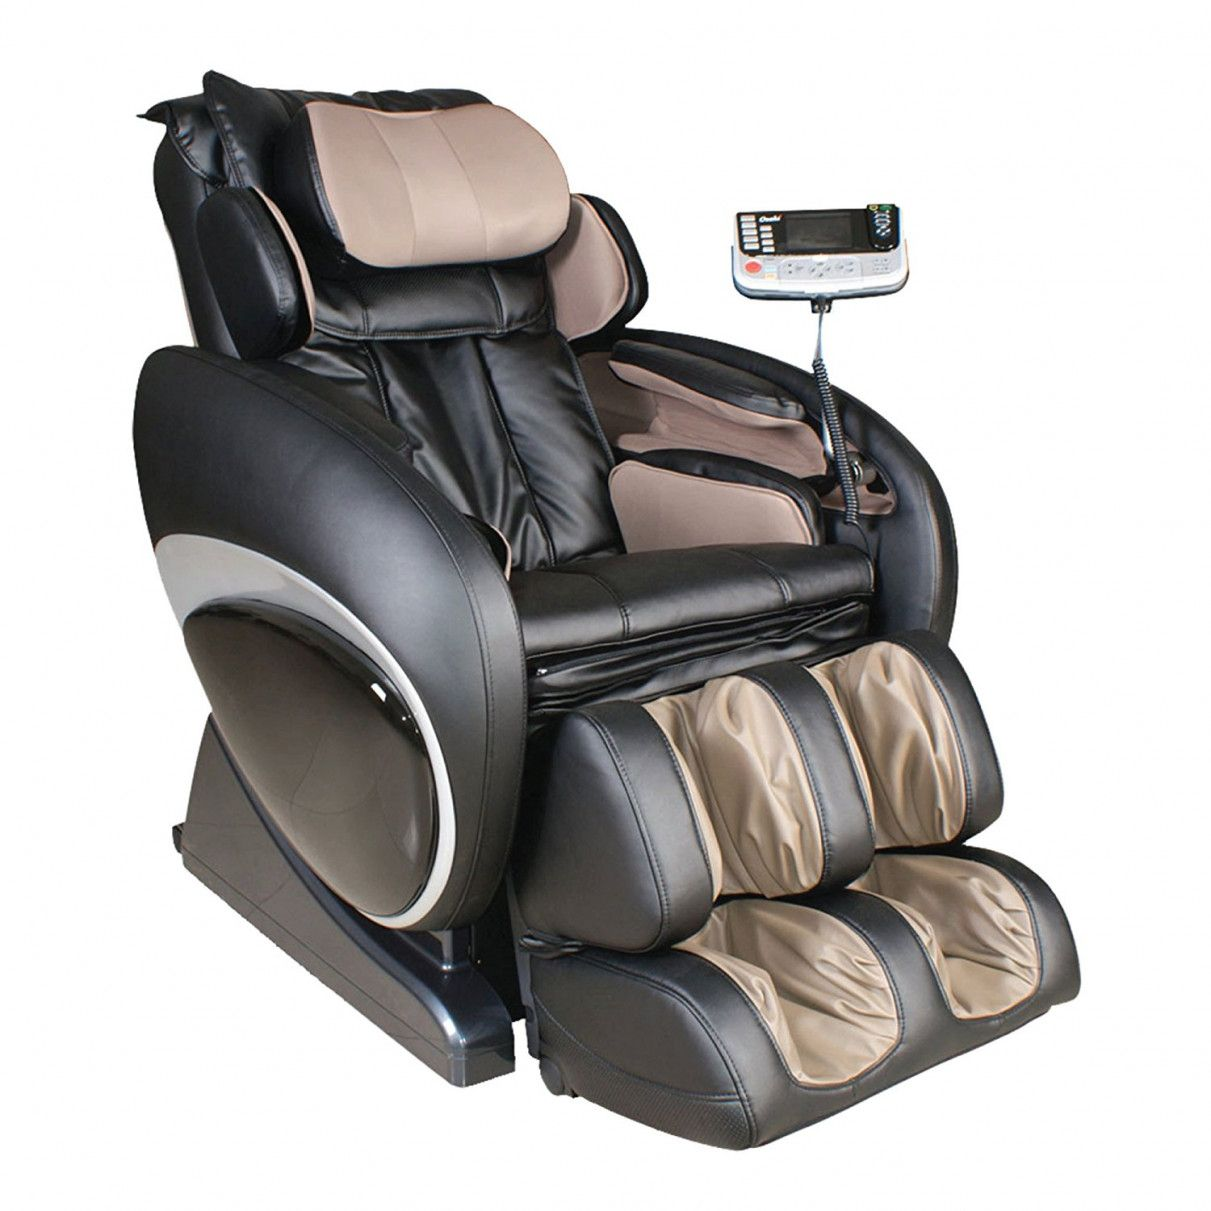 Osaki 4000 Massage Chair   Home Office Furniture Images Check More At  Http://